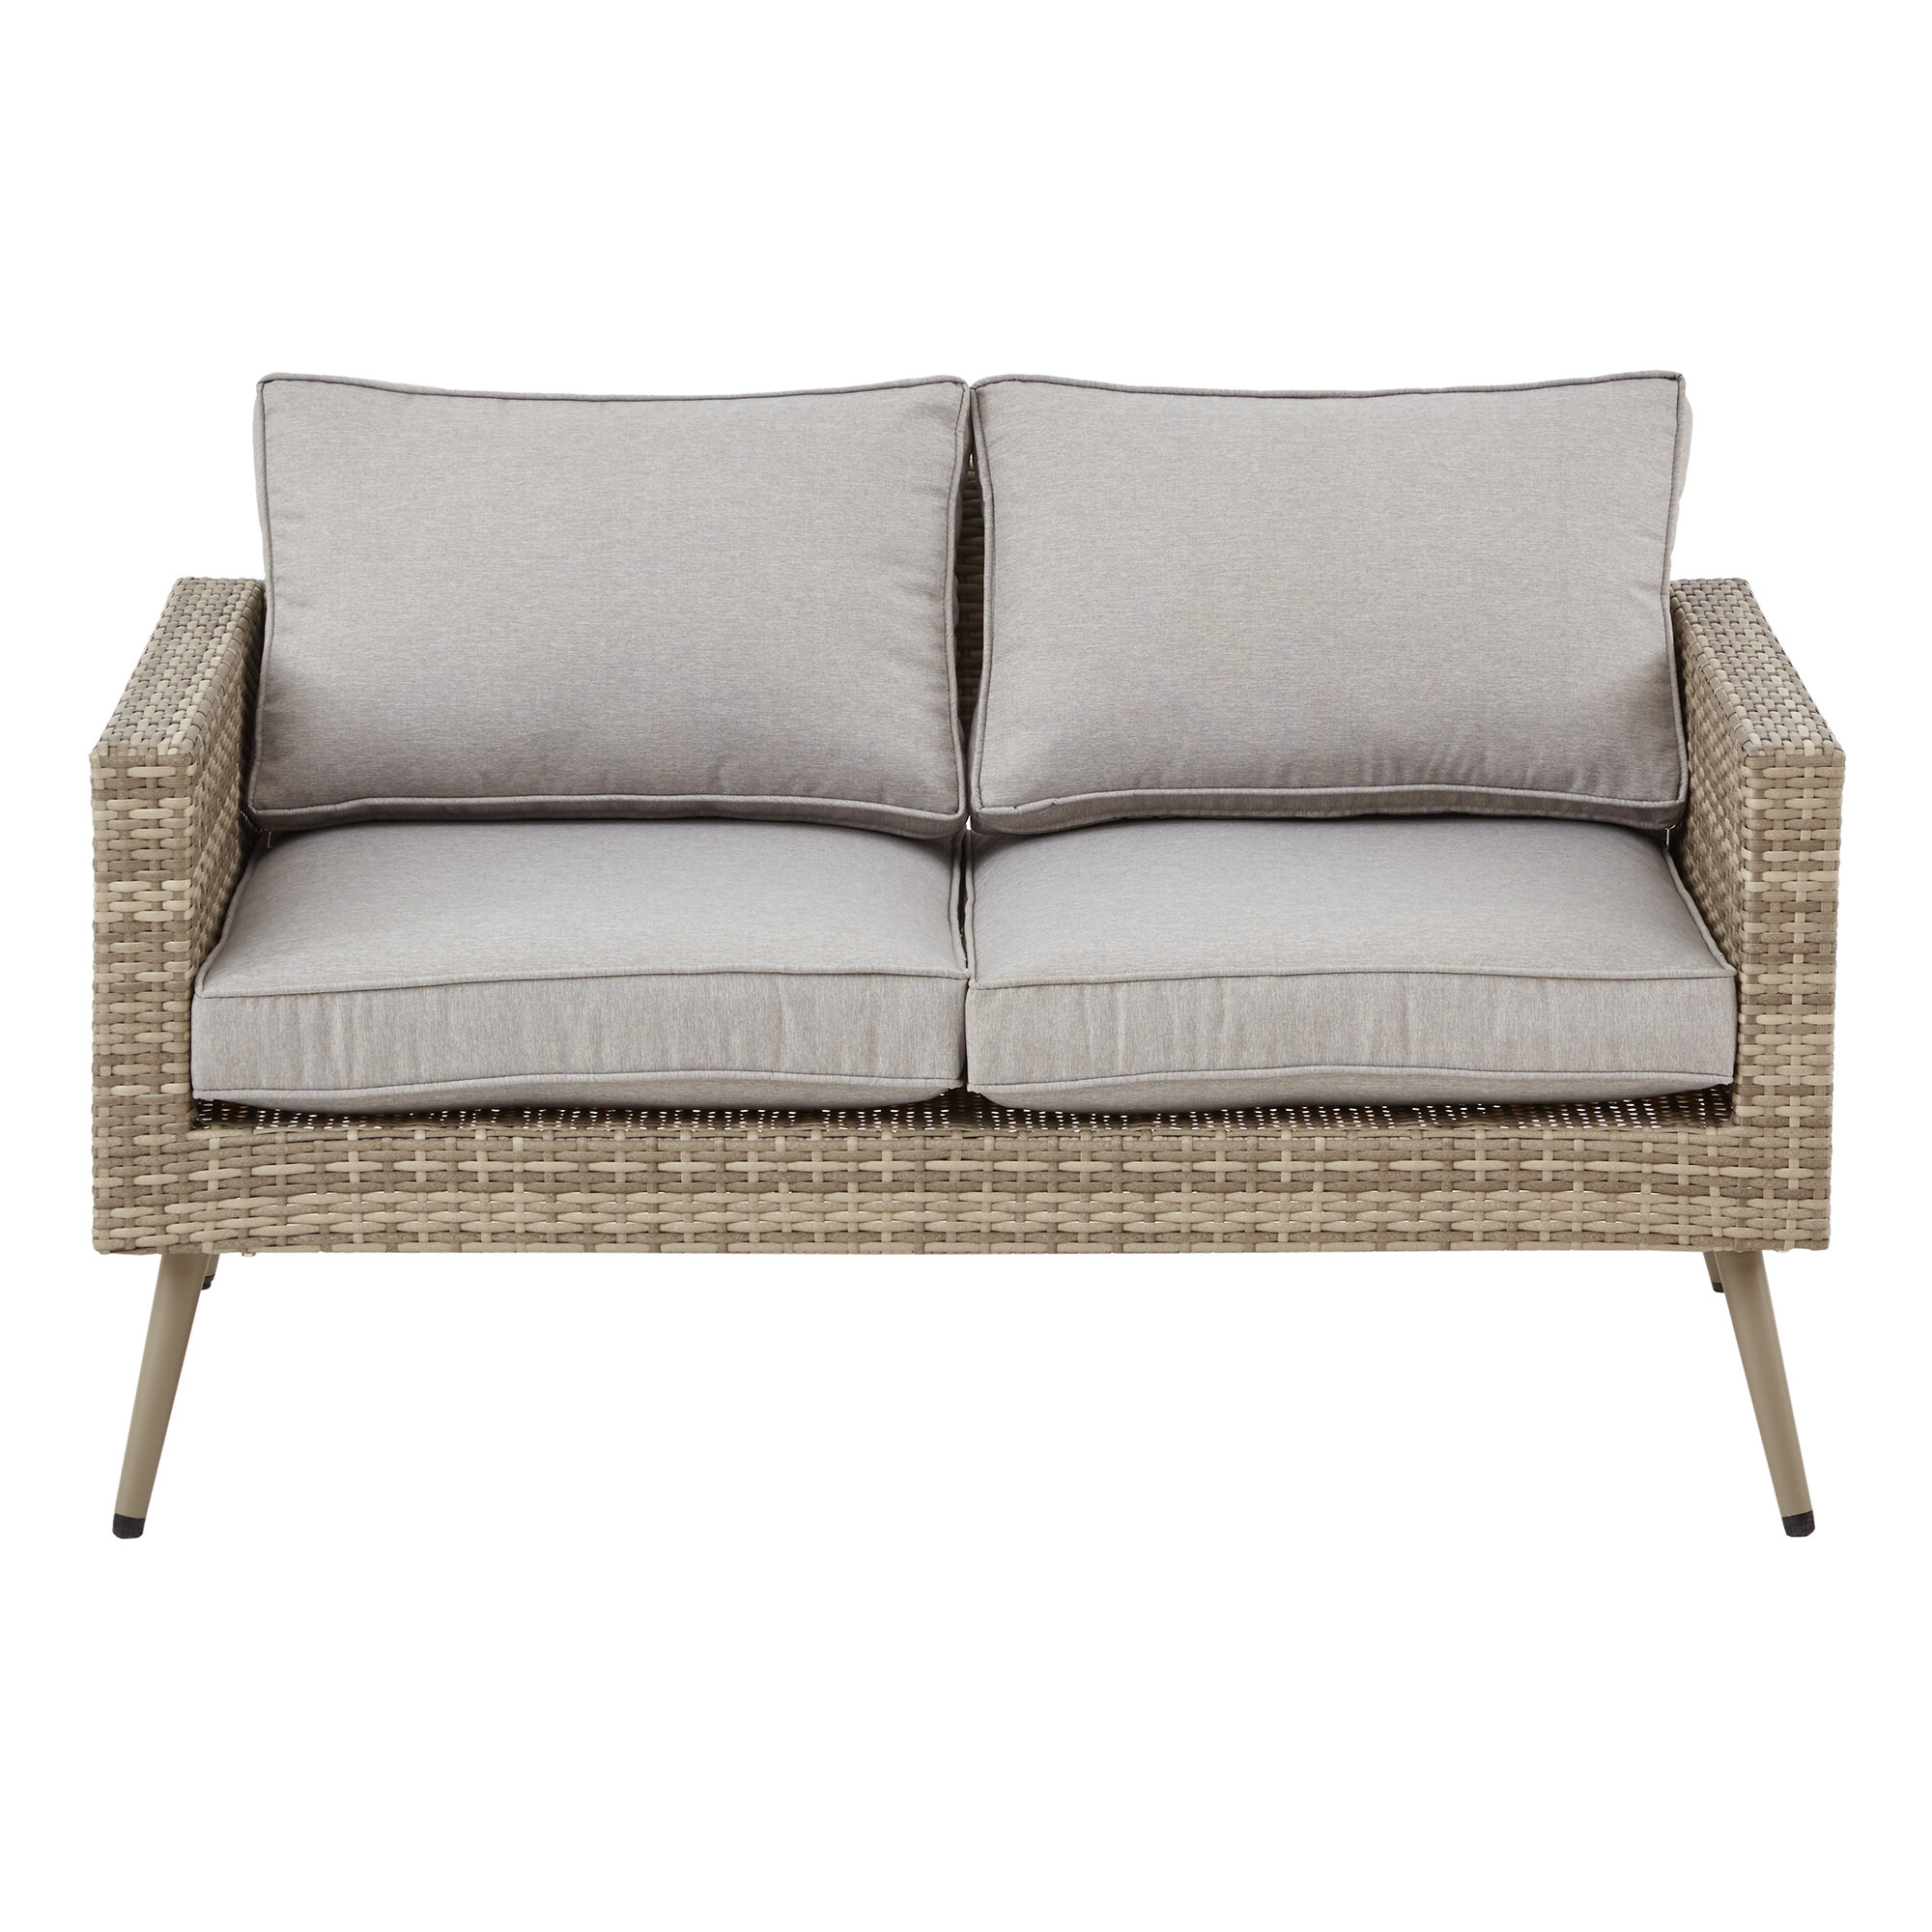 Most Recently Released Pantano Loveseat With Cushions With Regard To Wakeland Wicker Loveseats With Cushions (View 6 of 25)